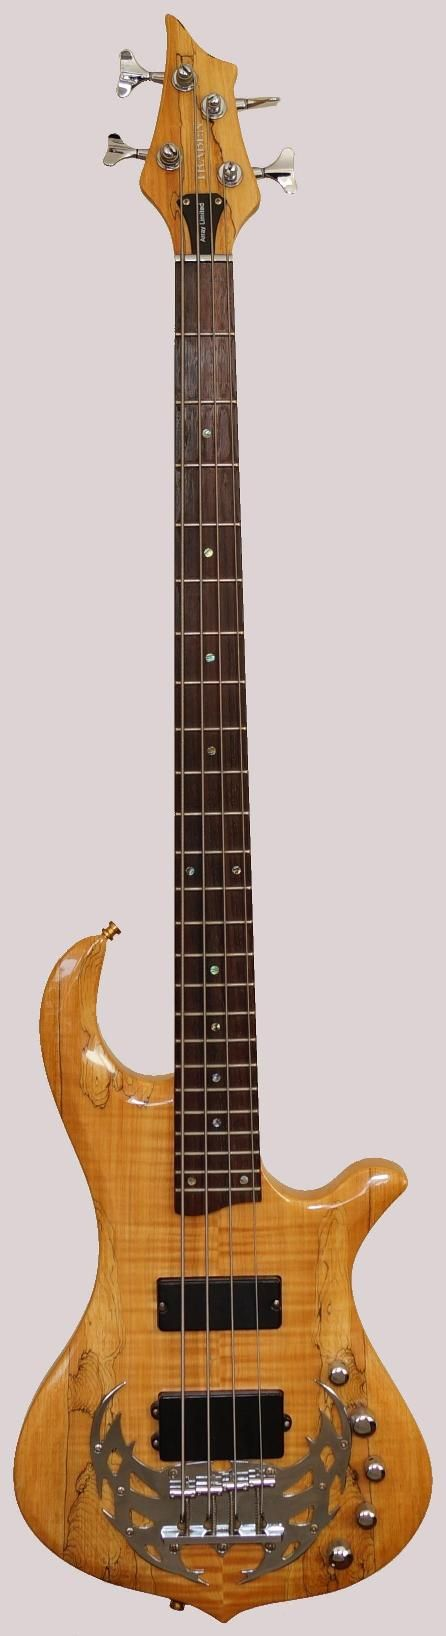 Traben Array Ltd.4 Bass with the big bridge at Ukulele Corner